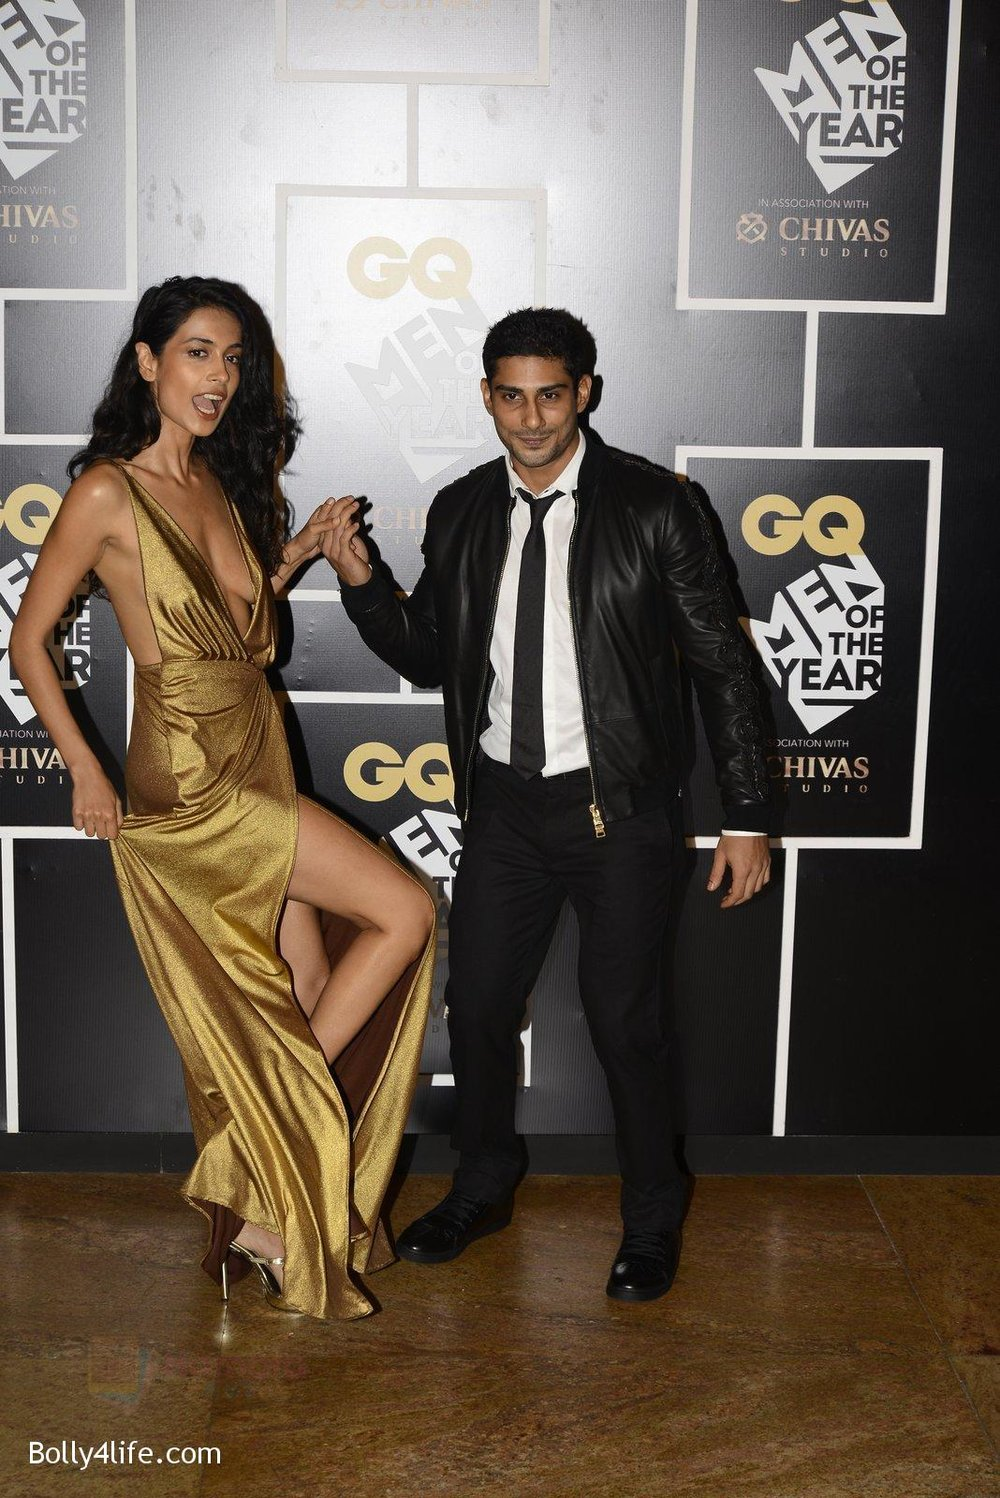 Sarah-Jane-Dias-at-GQ-MEN-OF-THE-YEAR-on-27th-Sept-2016-1103.jpg